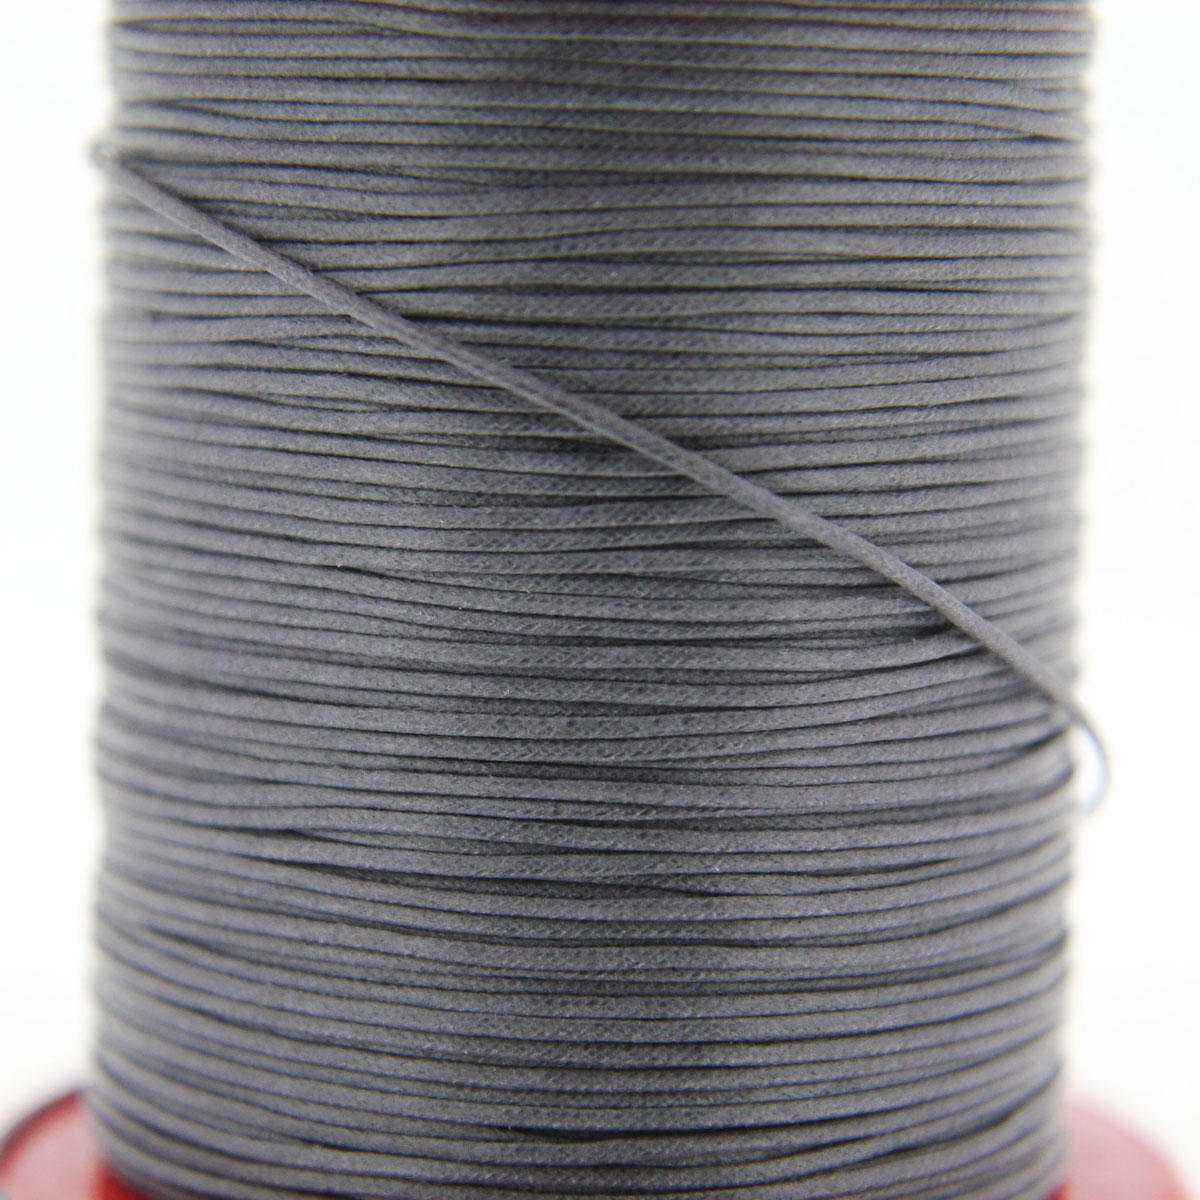 Charcoal 1.5mm Cotton Cord